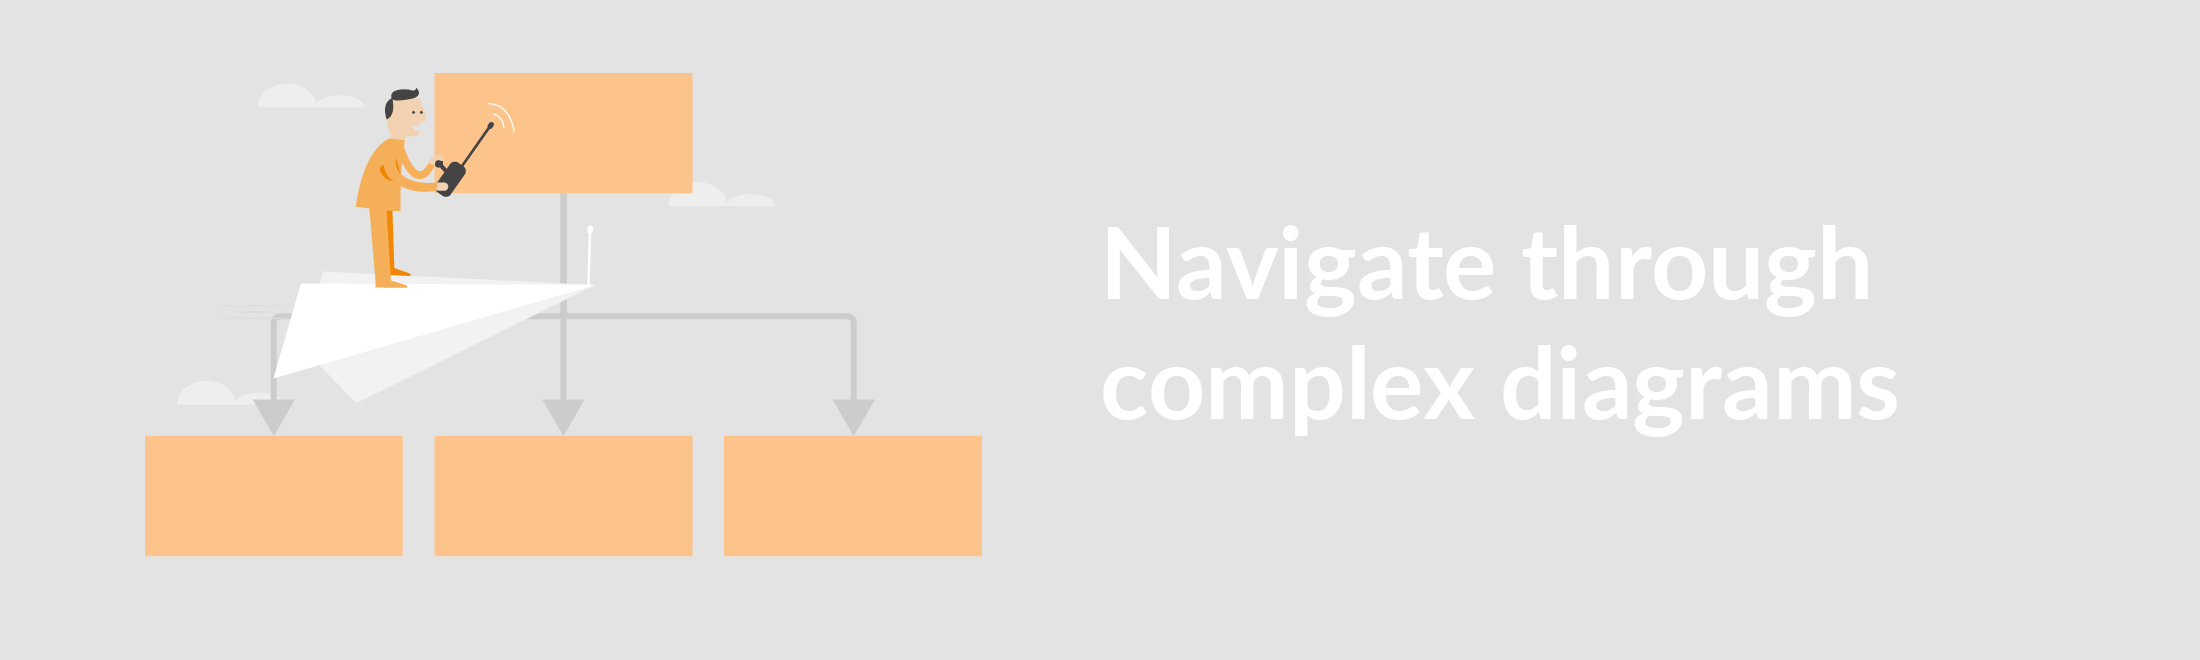 simplify diagram navigation